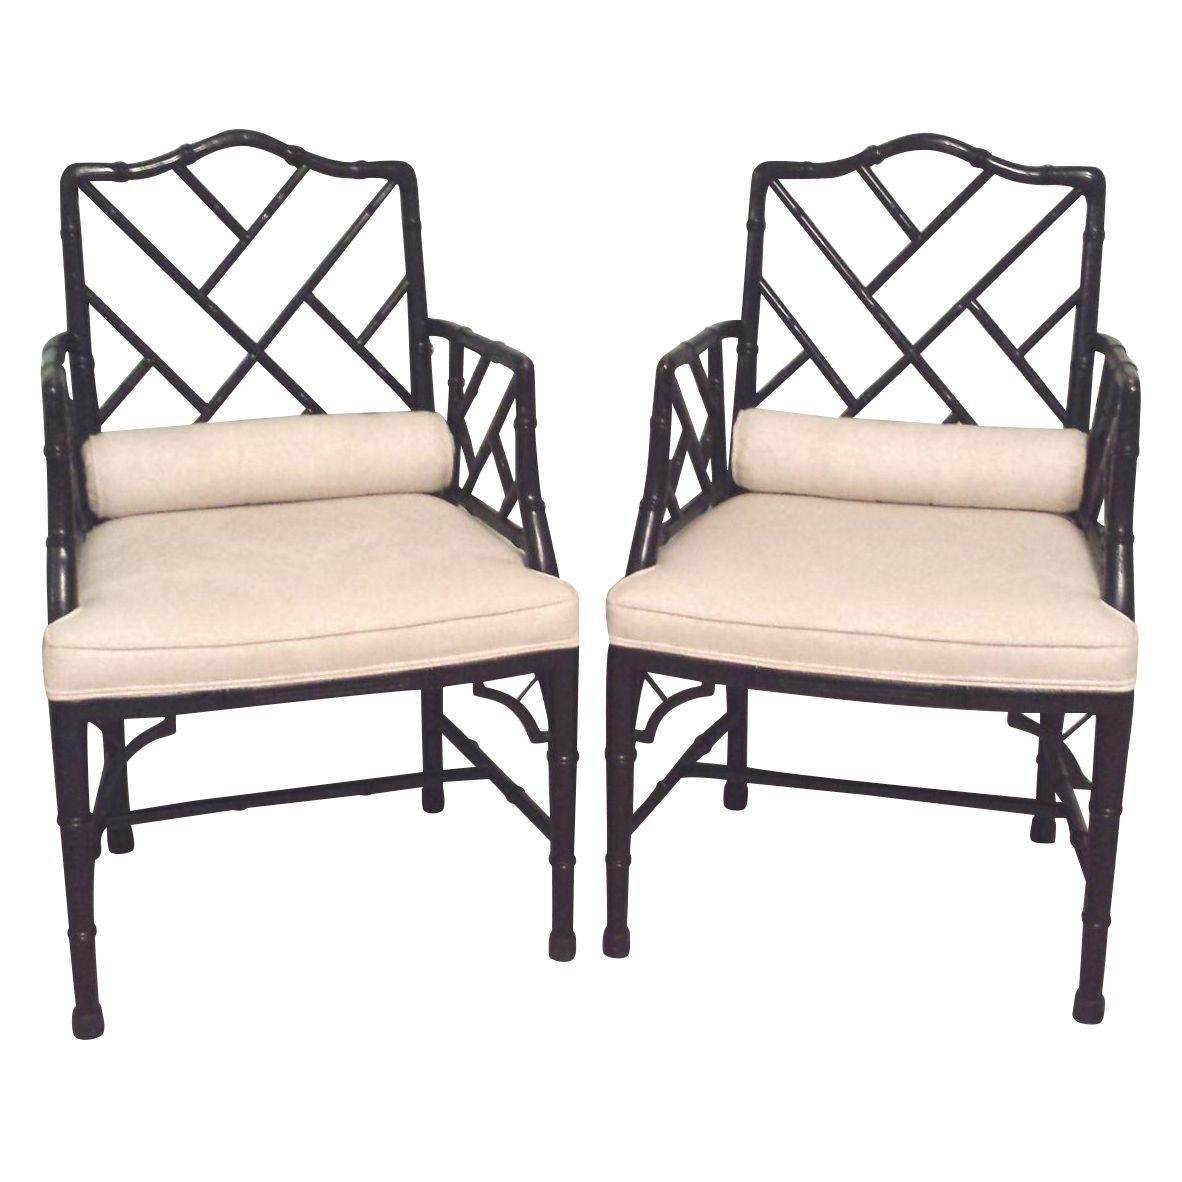 Etsy Vintage Bamboo Furniture: Baker Faux Bamboo Chinese Chippendale Hollywood Regency Chairs